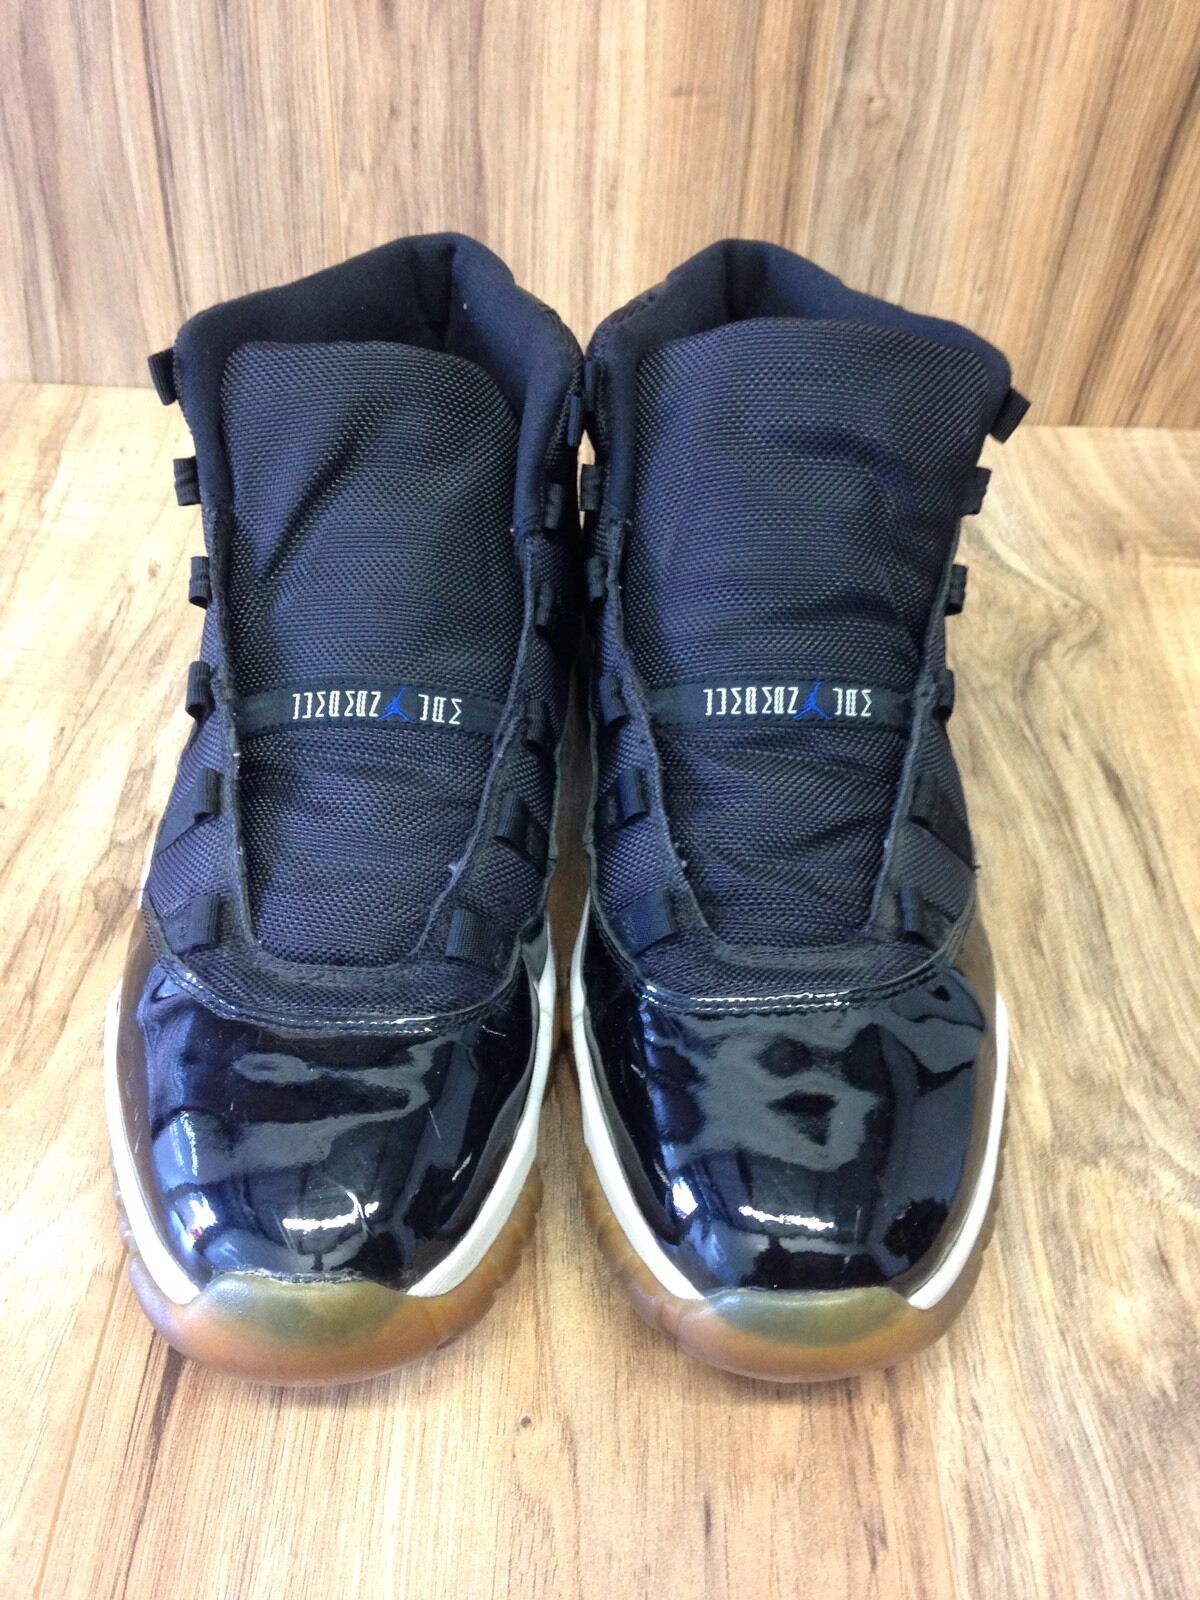 2000 2000 2000 Nike Air Jordan 11 XI Retro SZ13 OG Space Jam Black Varsity Blue 136046-041 b05752